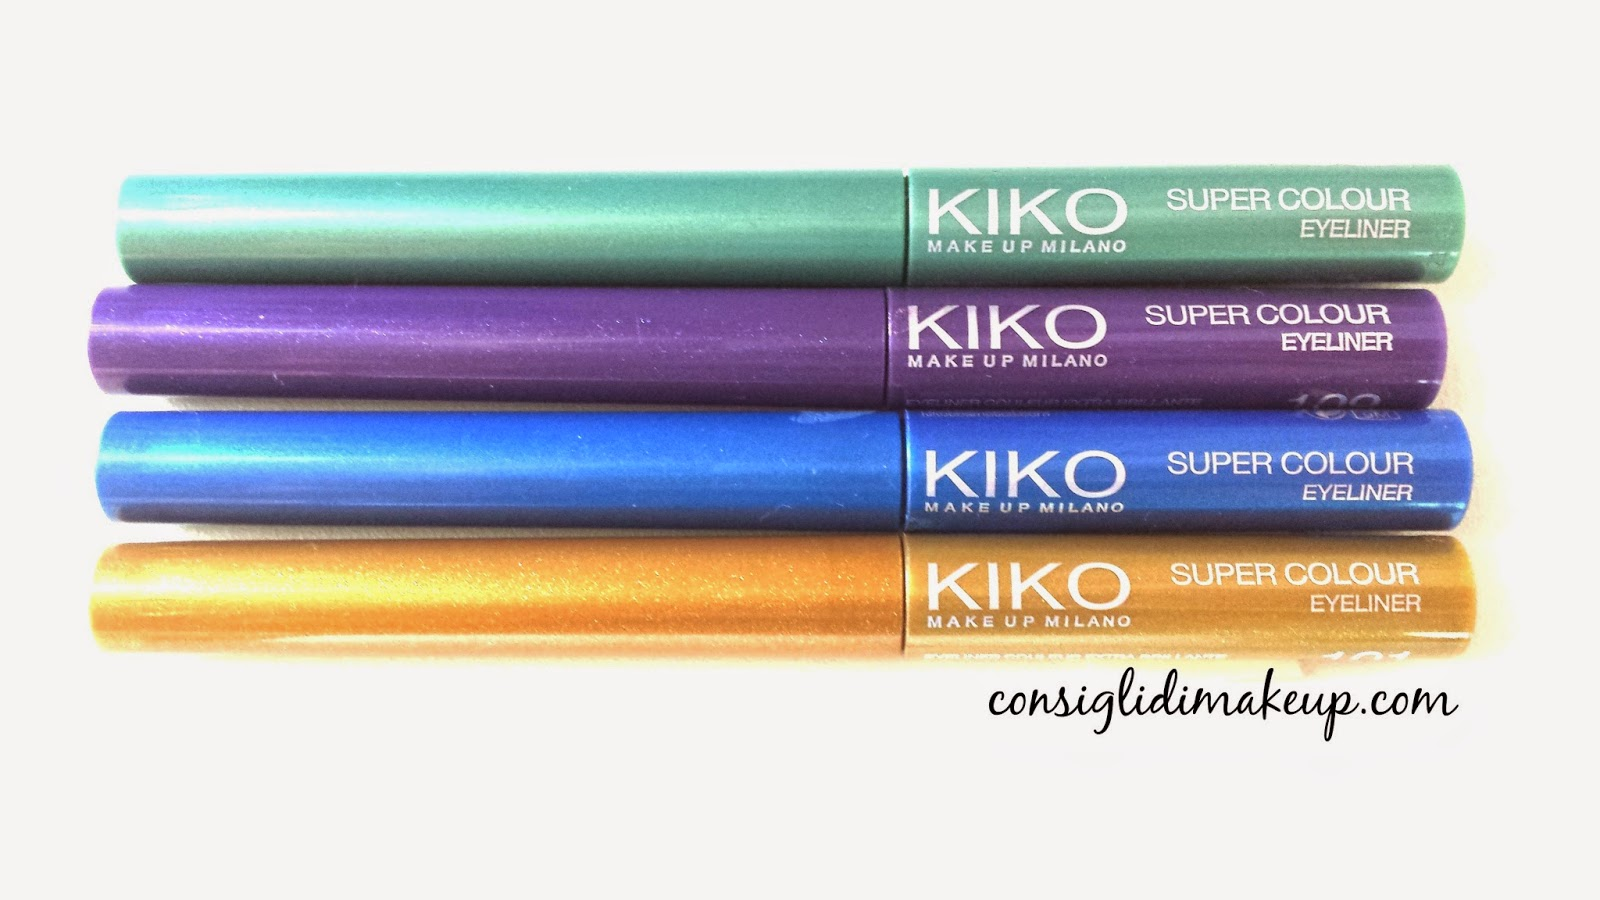 Review: Super Colour Eyeliner - KIKO Cosmetics